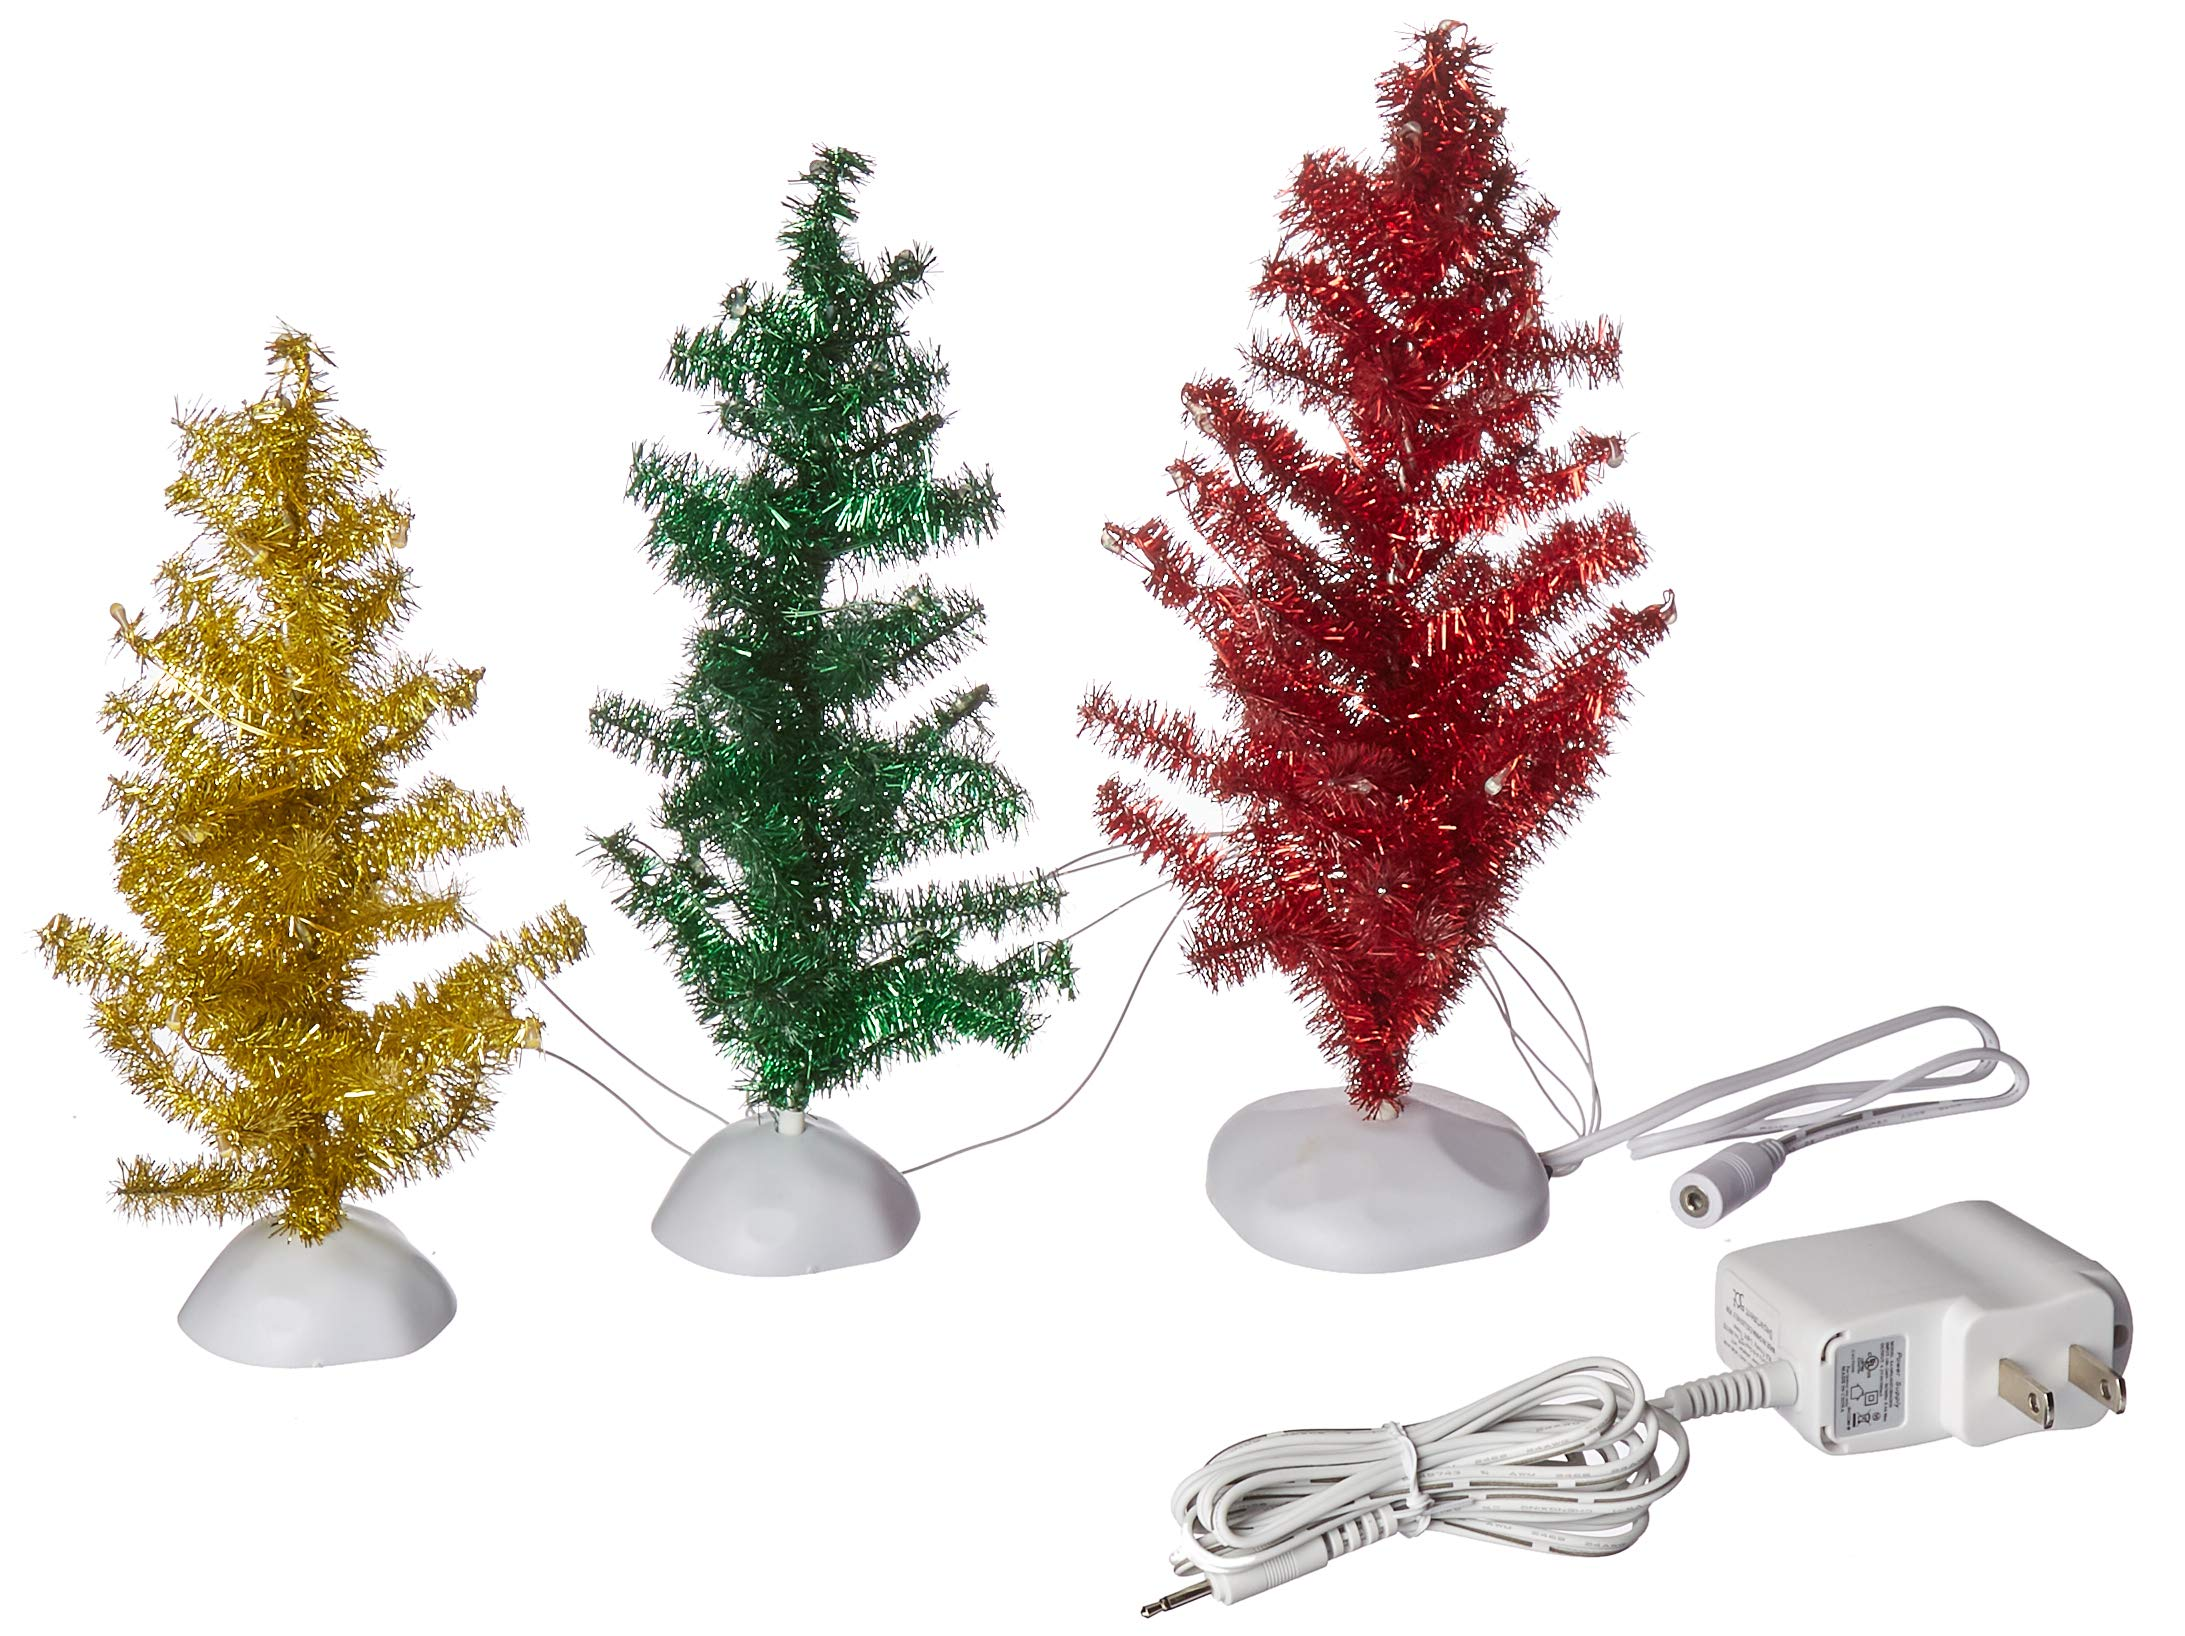 Department 56 Collections Magical Tinsel Trees Figurines (Set of 3) Village Accessory, Multicolor by Department 56